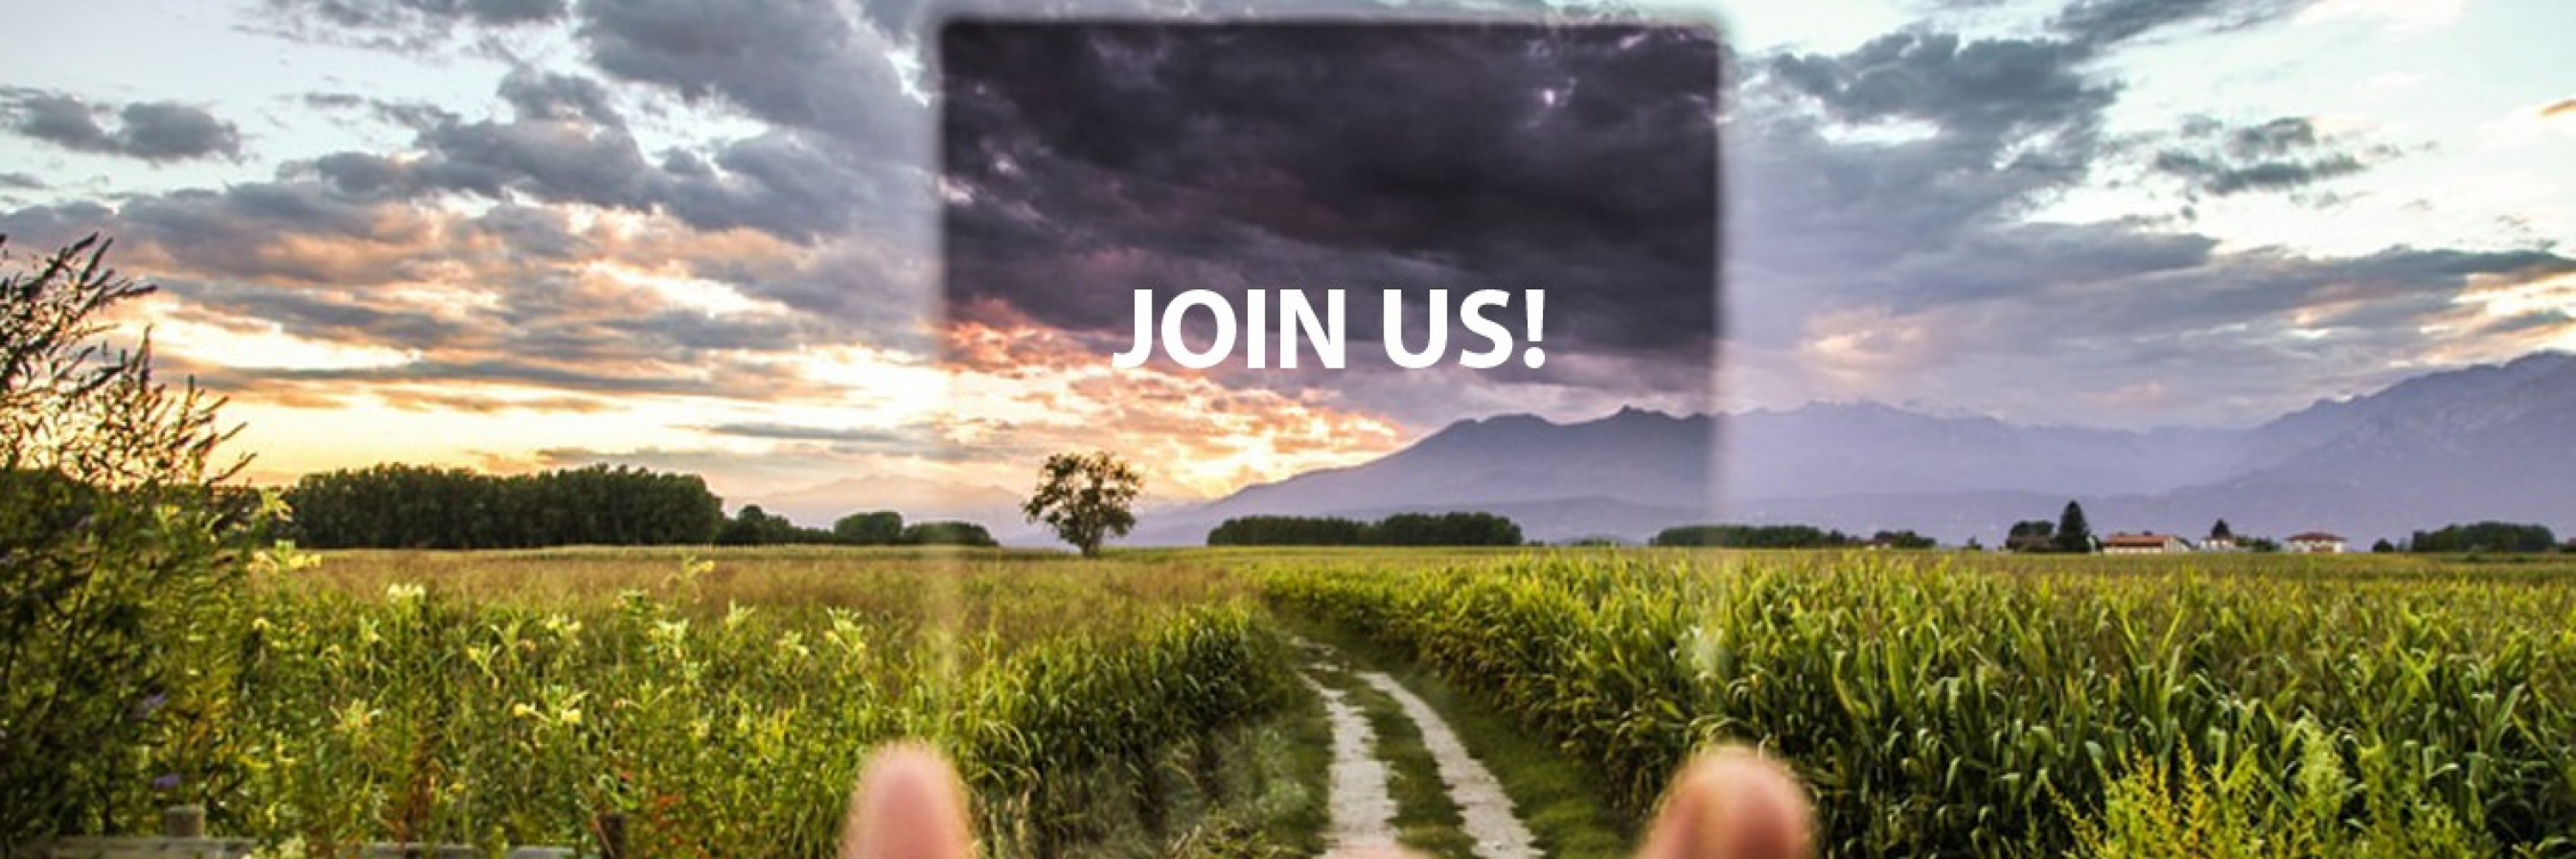 join-us-slider-ncsp